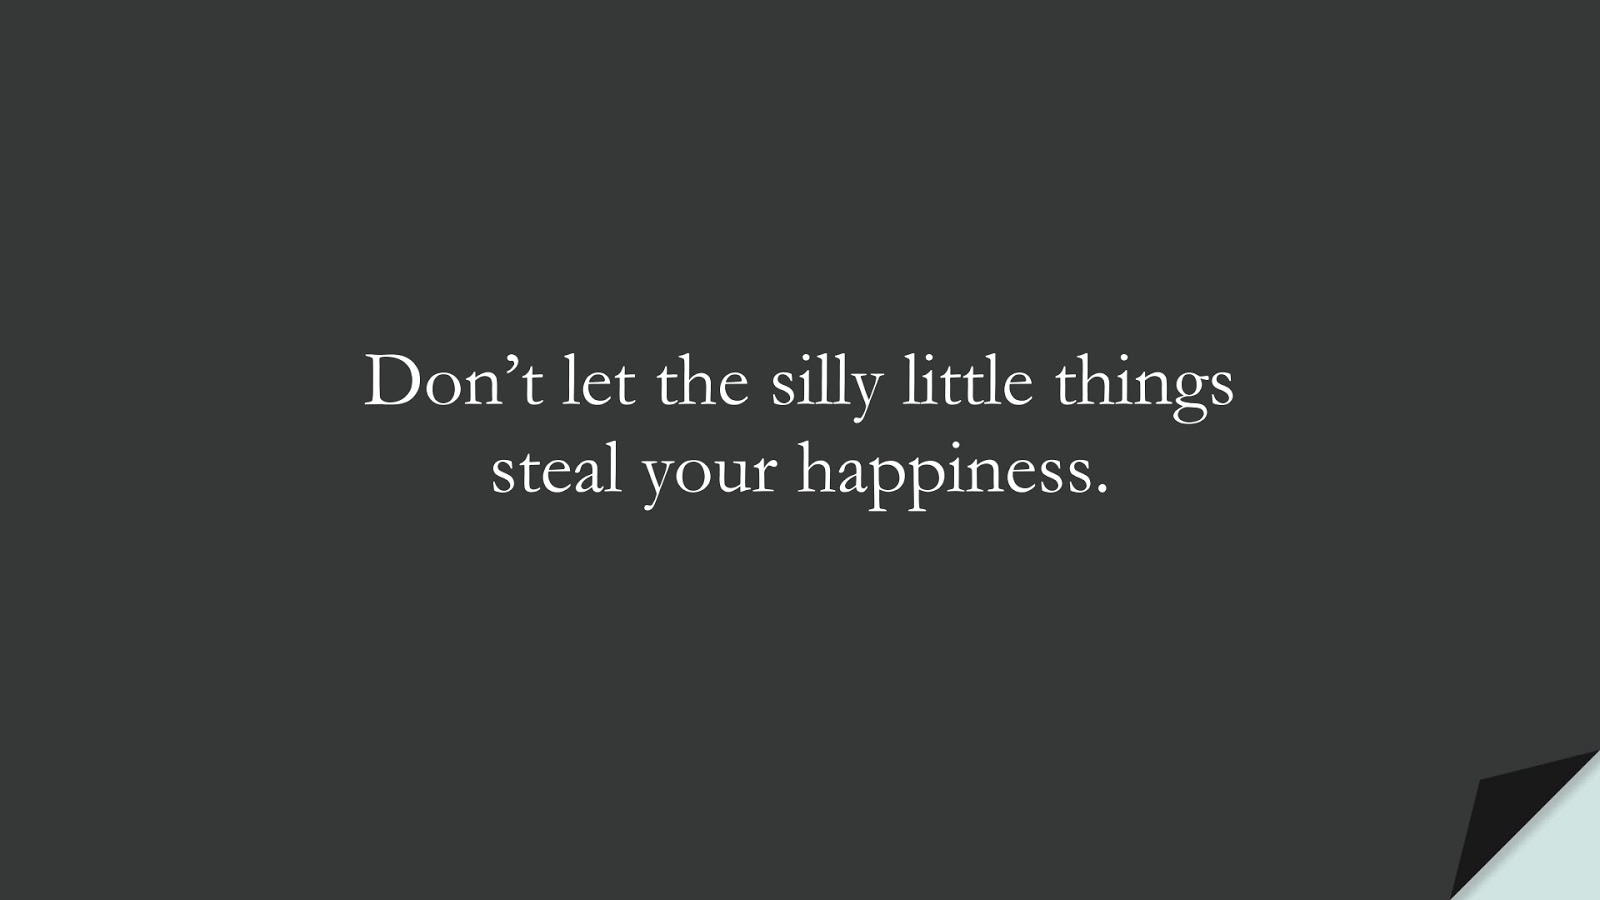 Don't let the silly little things steal your happiness.FALSE